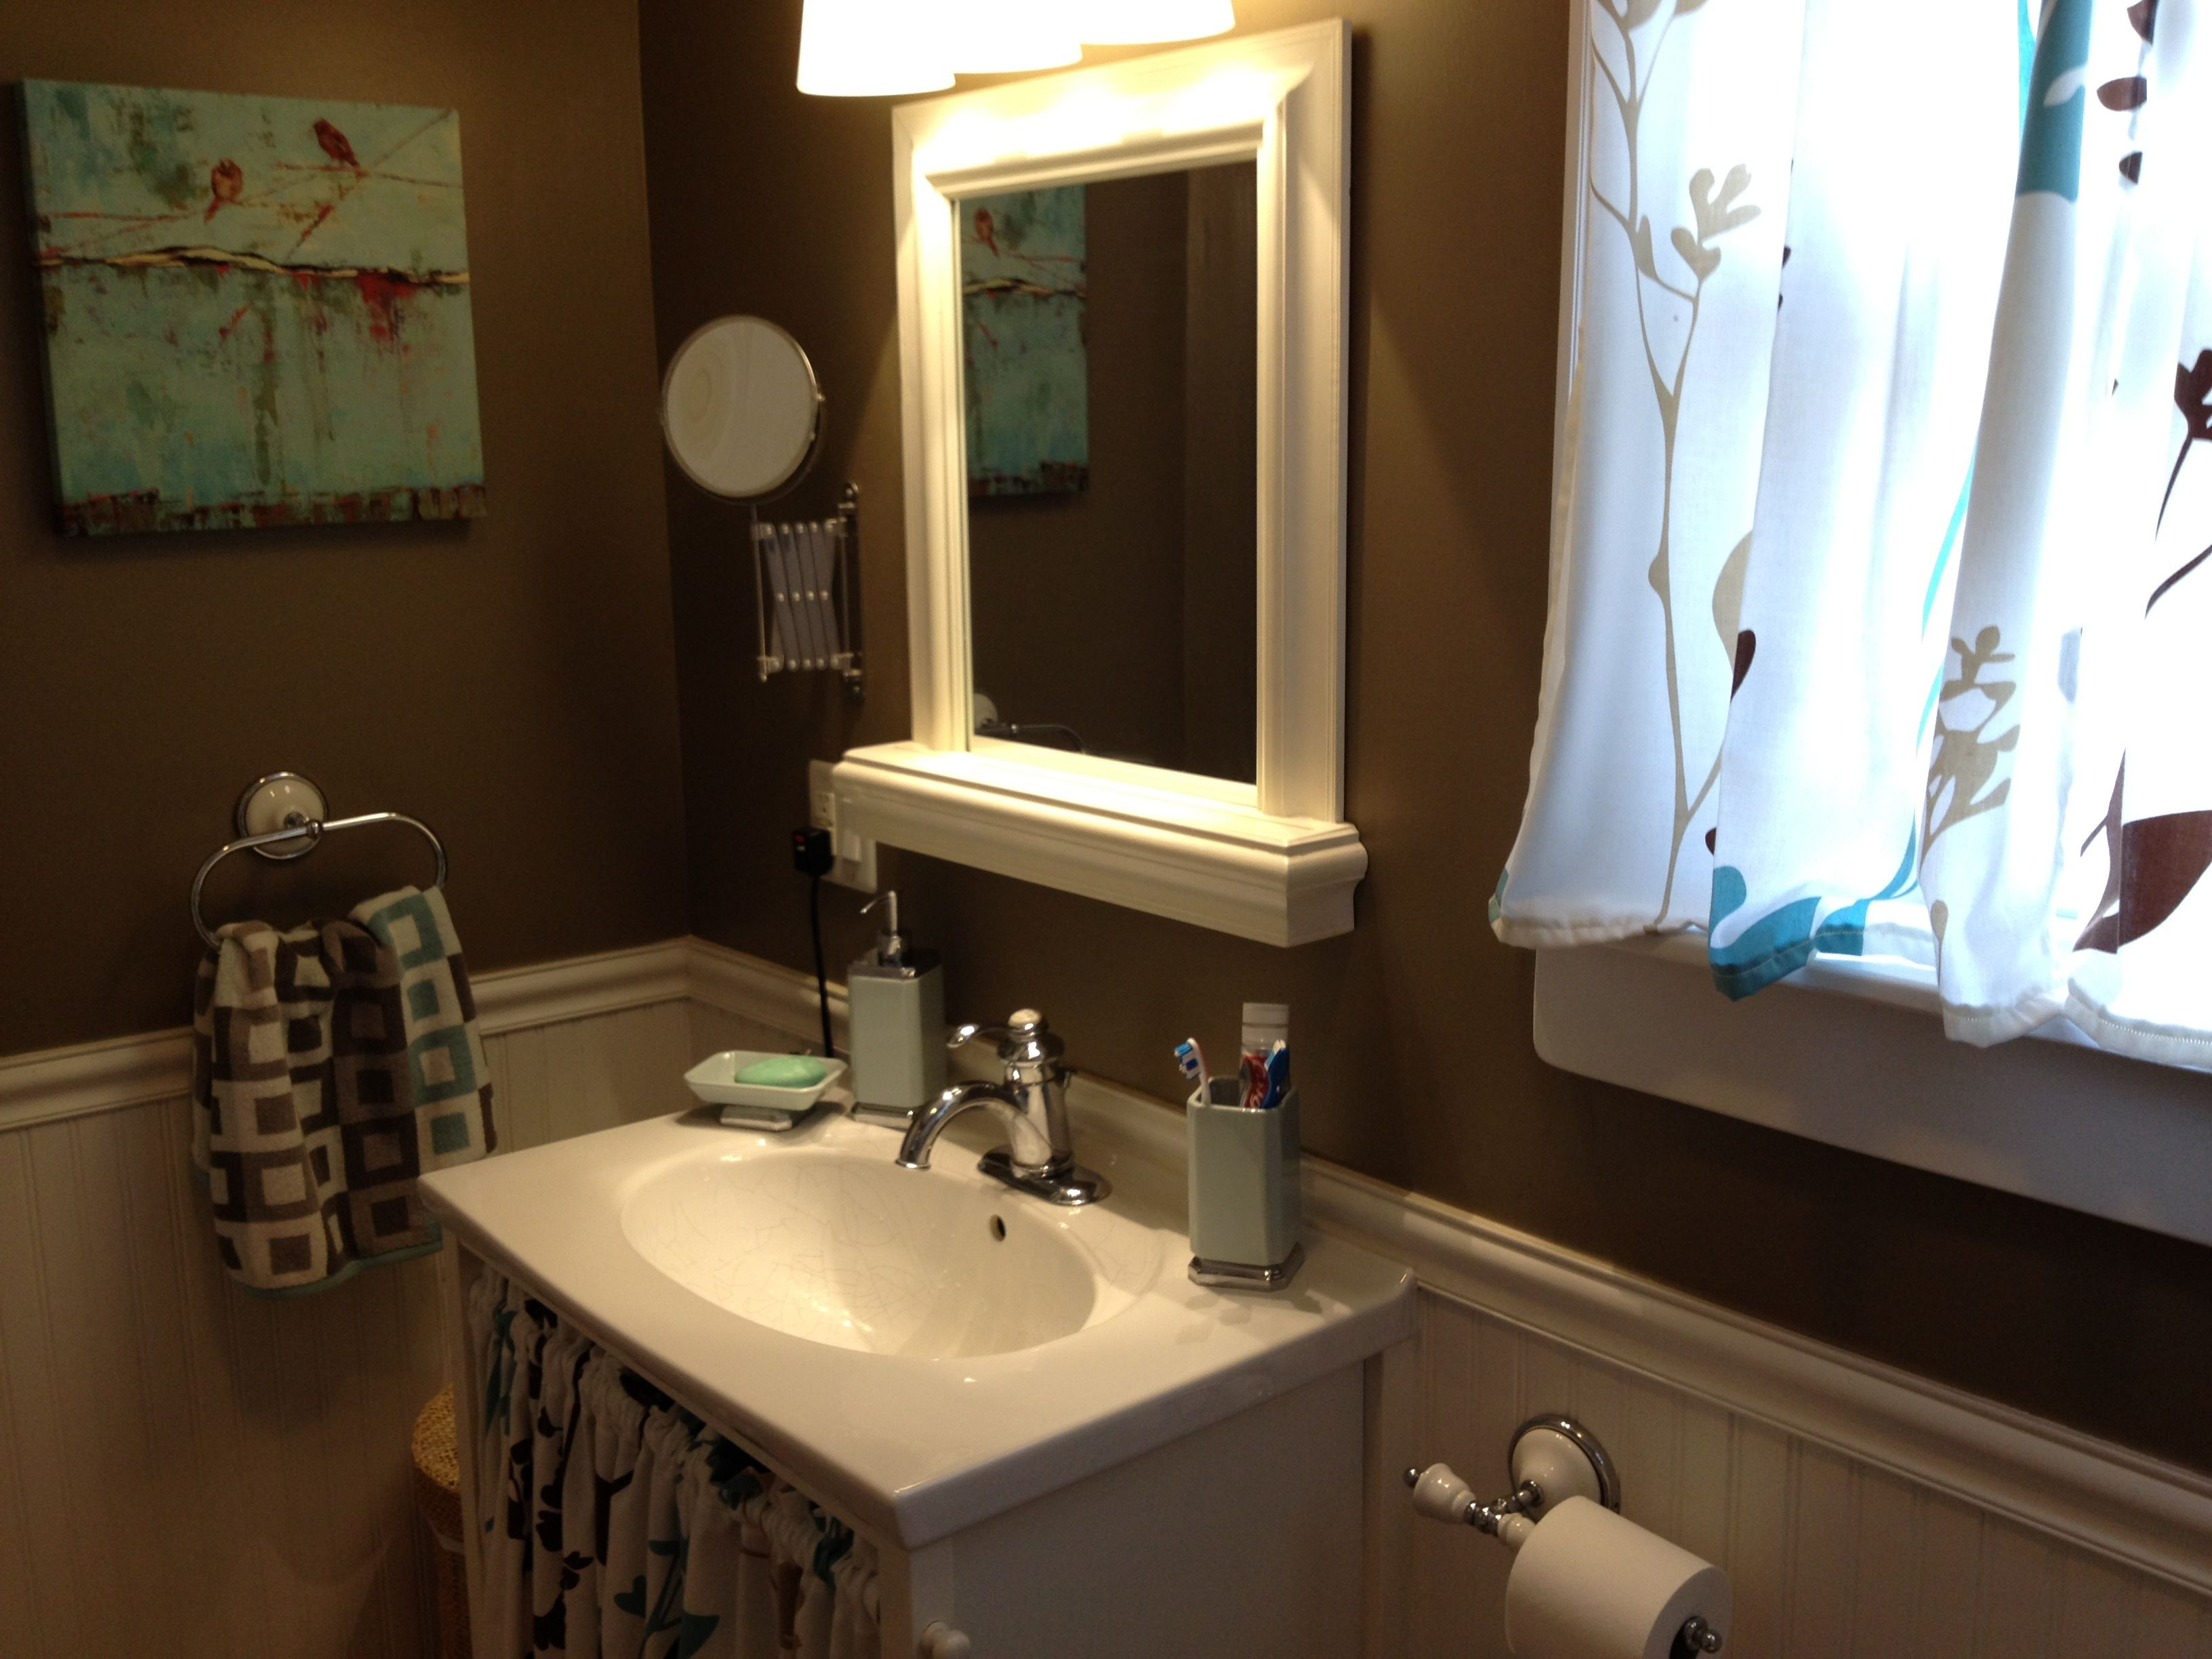 Chocolate Brown Bathroom Re Done Using Teal Accents Brown Bathroom Brown Bathroom Decor Teal Bathroom